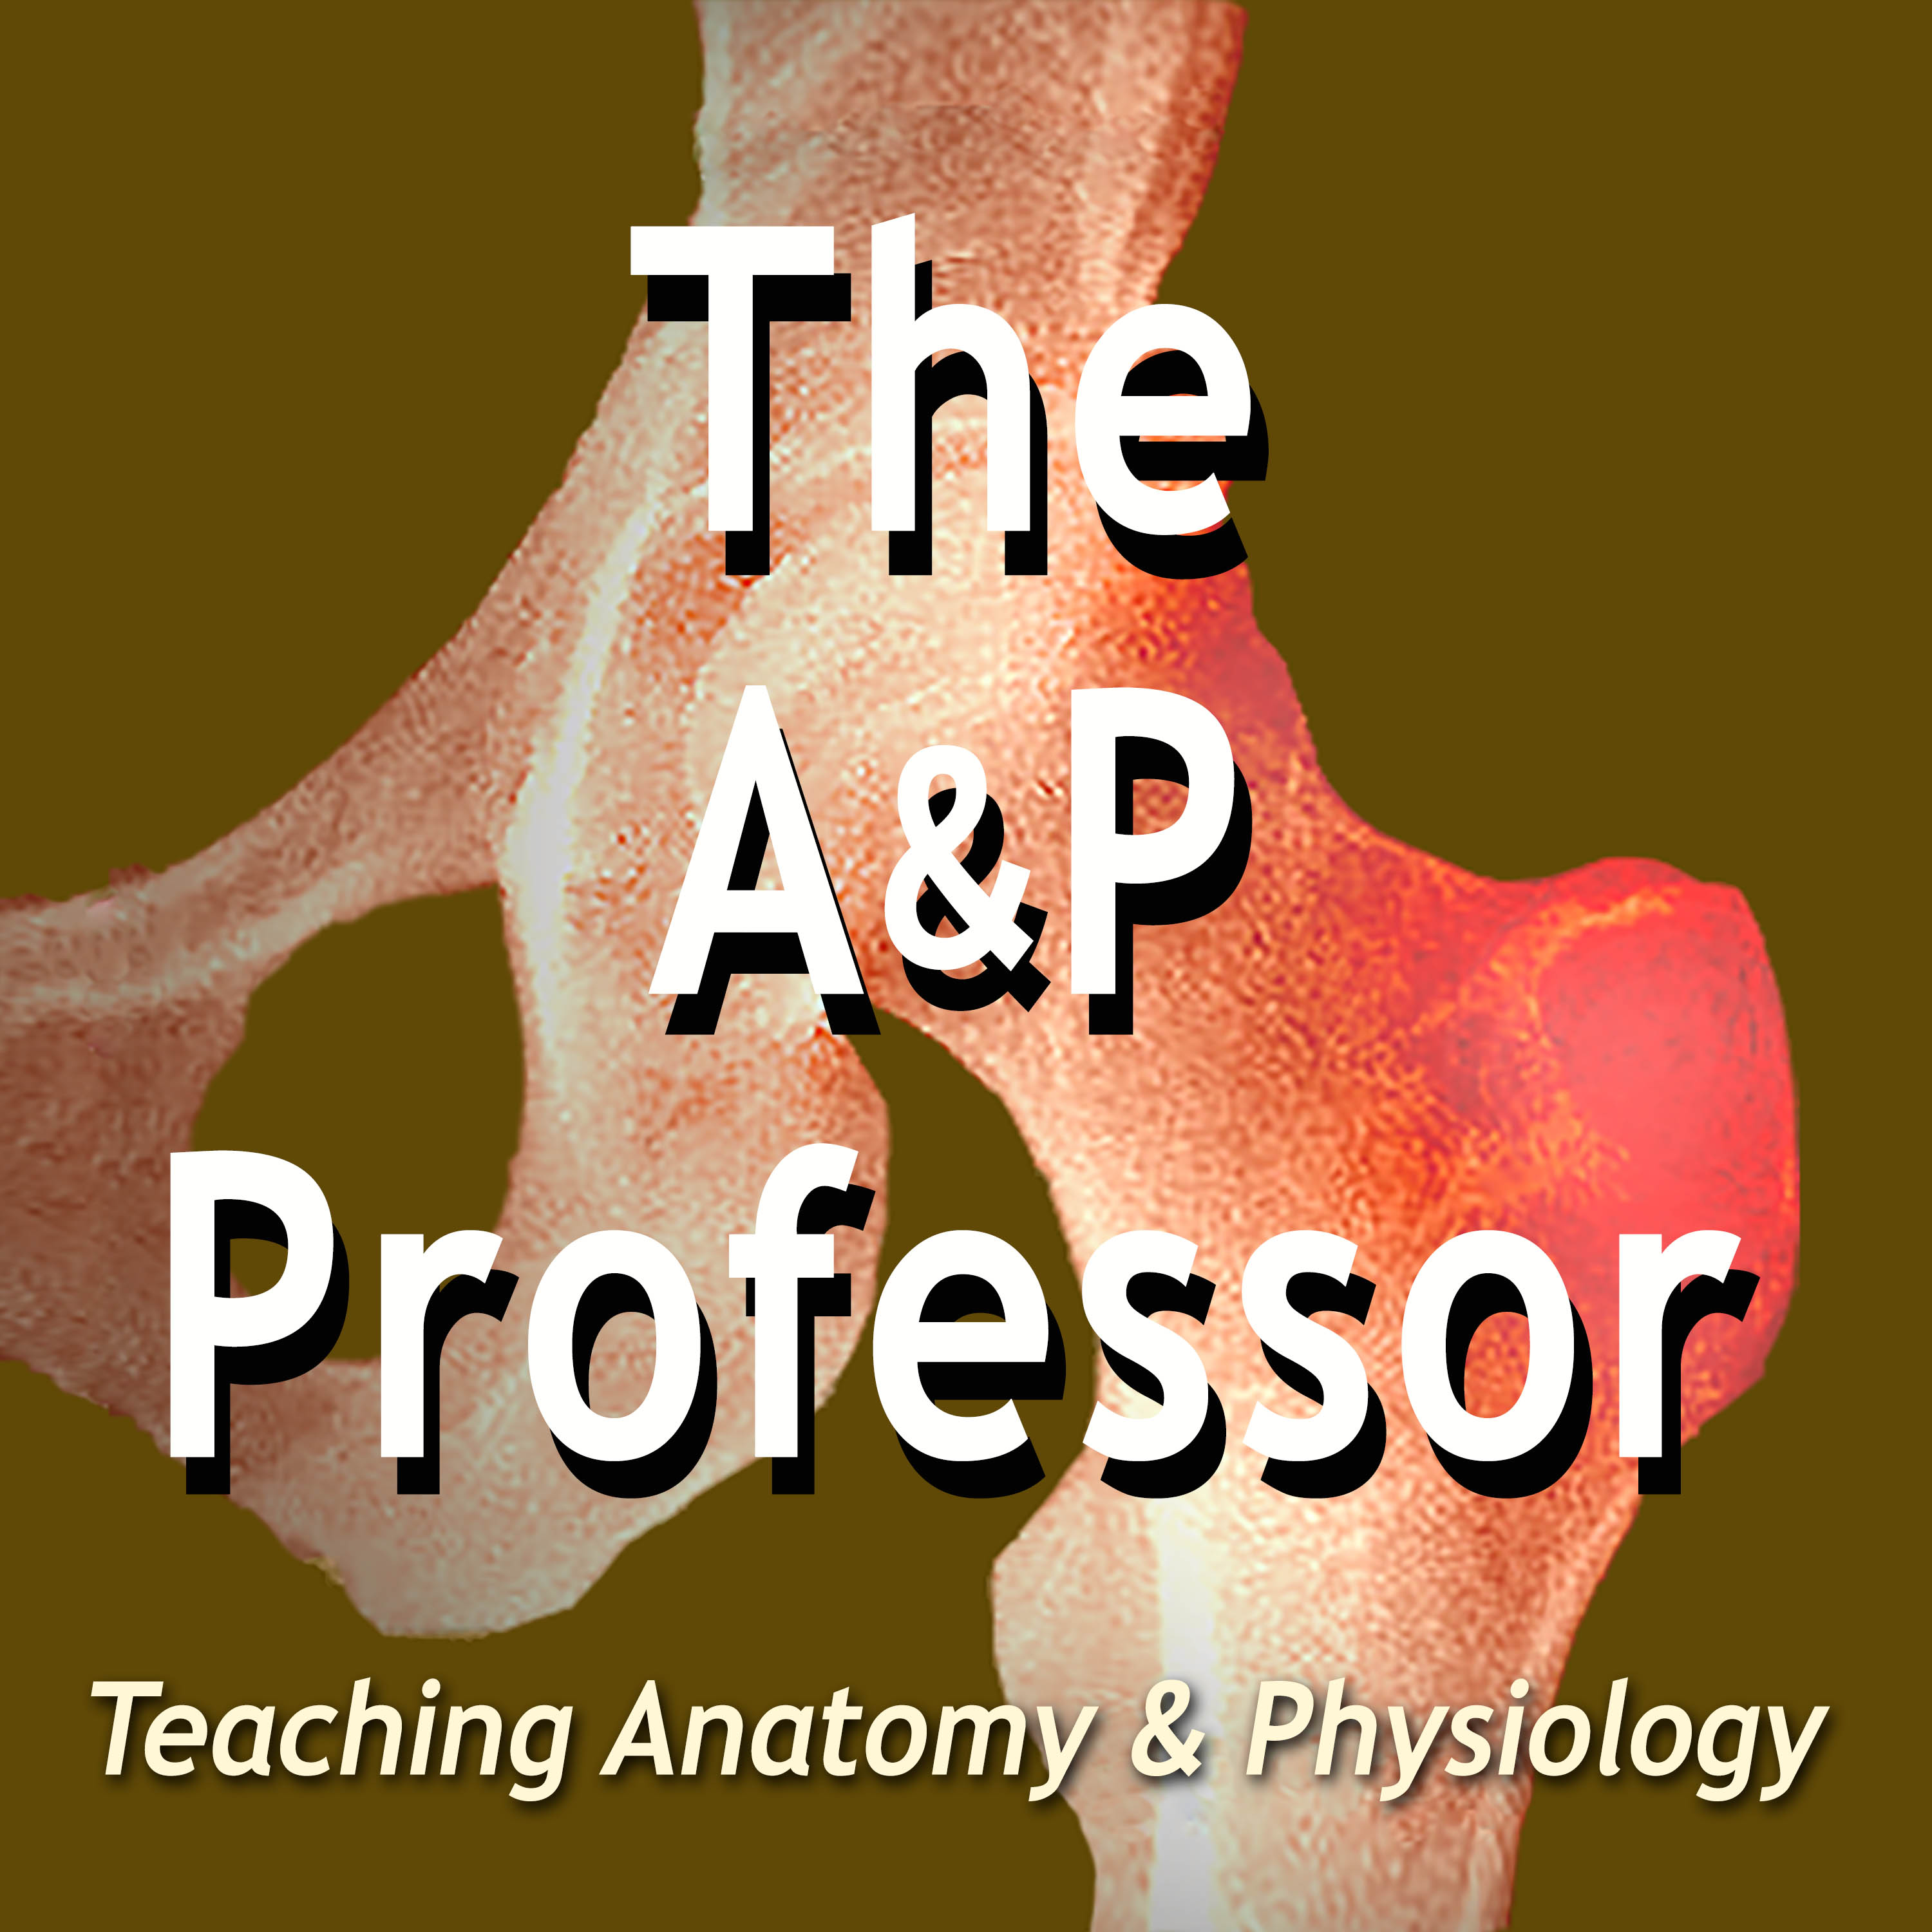 A highlight from More Slide Tricks | Effective Teaching Presentations | TAPP 95